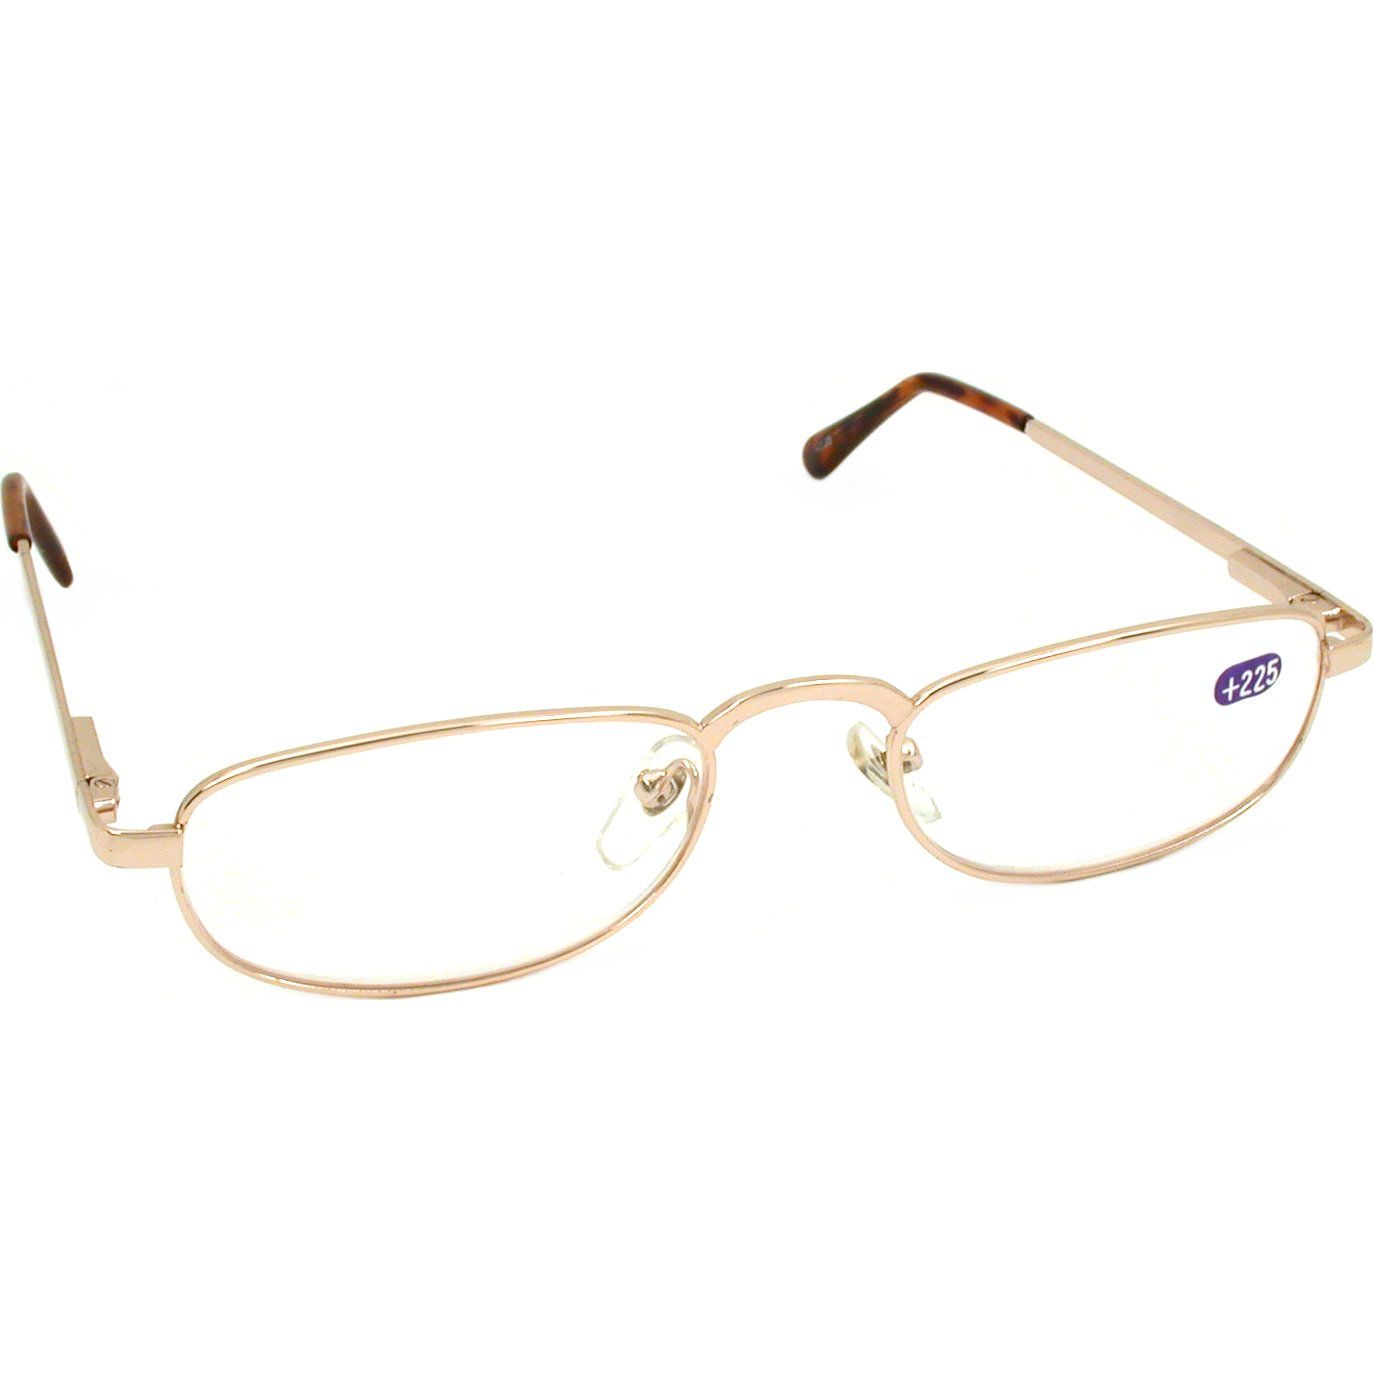 Gold Frame Reading Glasses : 2.25X Gold Colored Half Frame Reading Glasses eBay